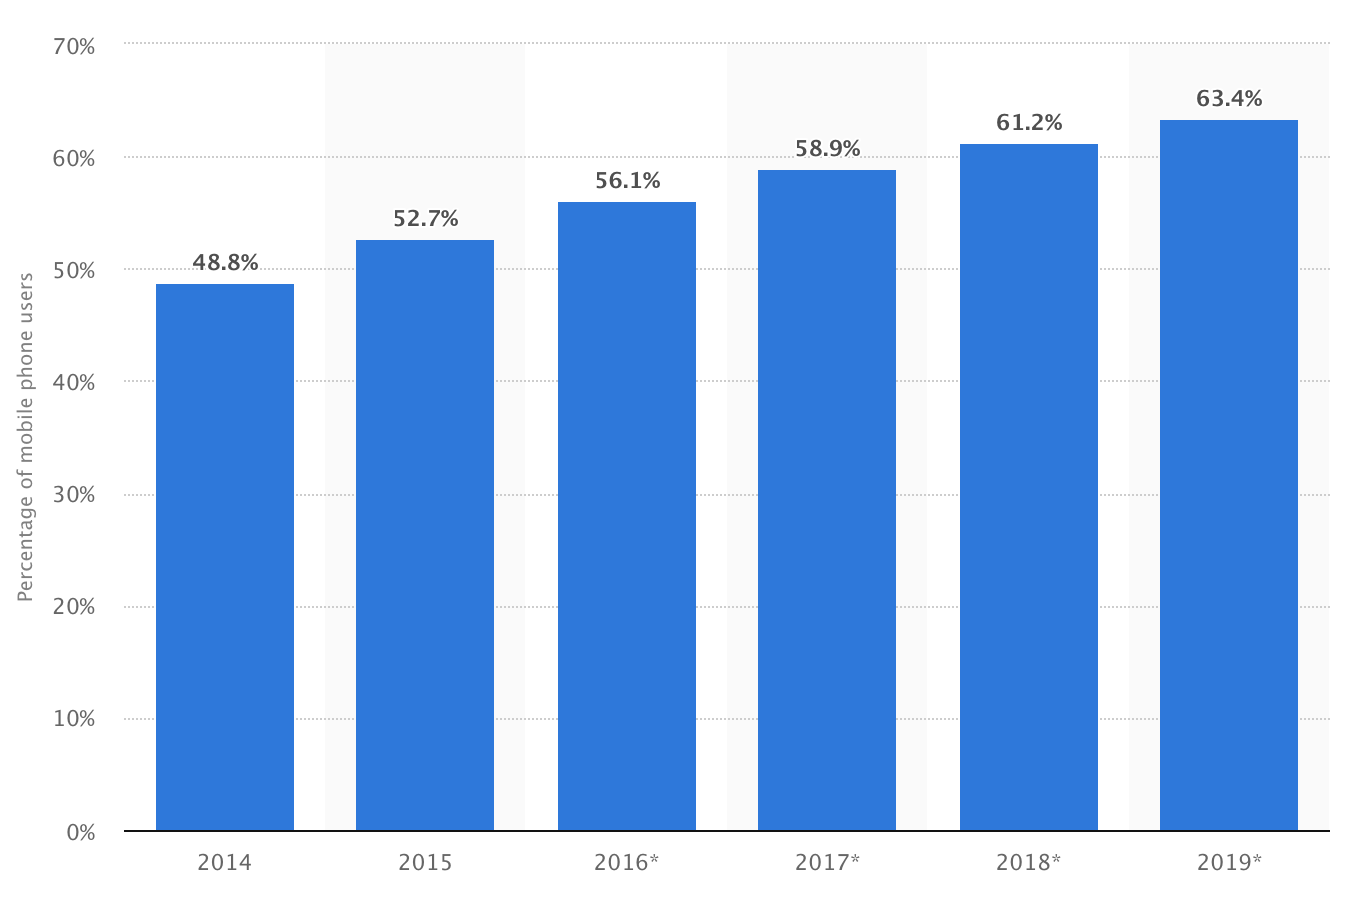 Mobile phone internet user penetration worldwide from 2014 to 2019